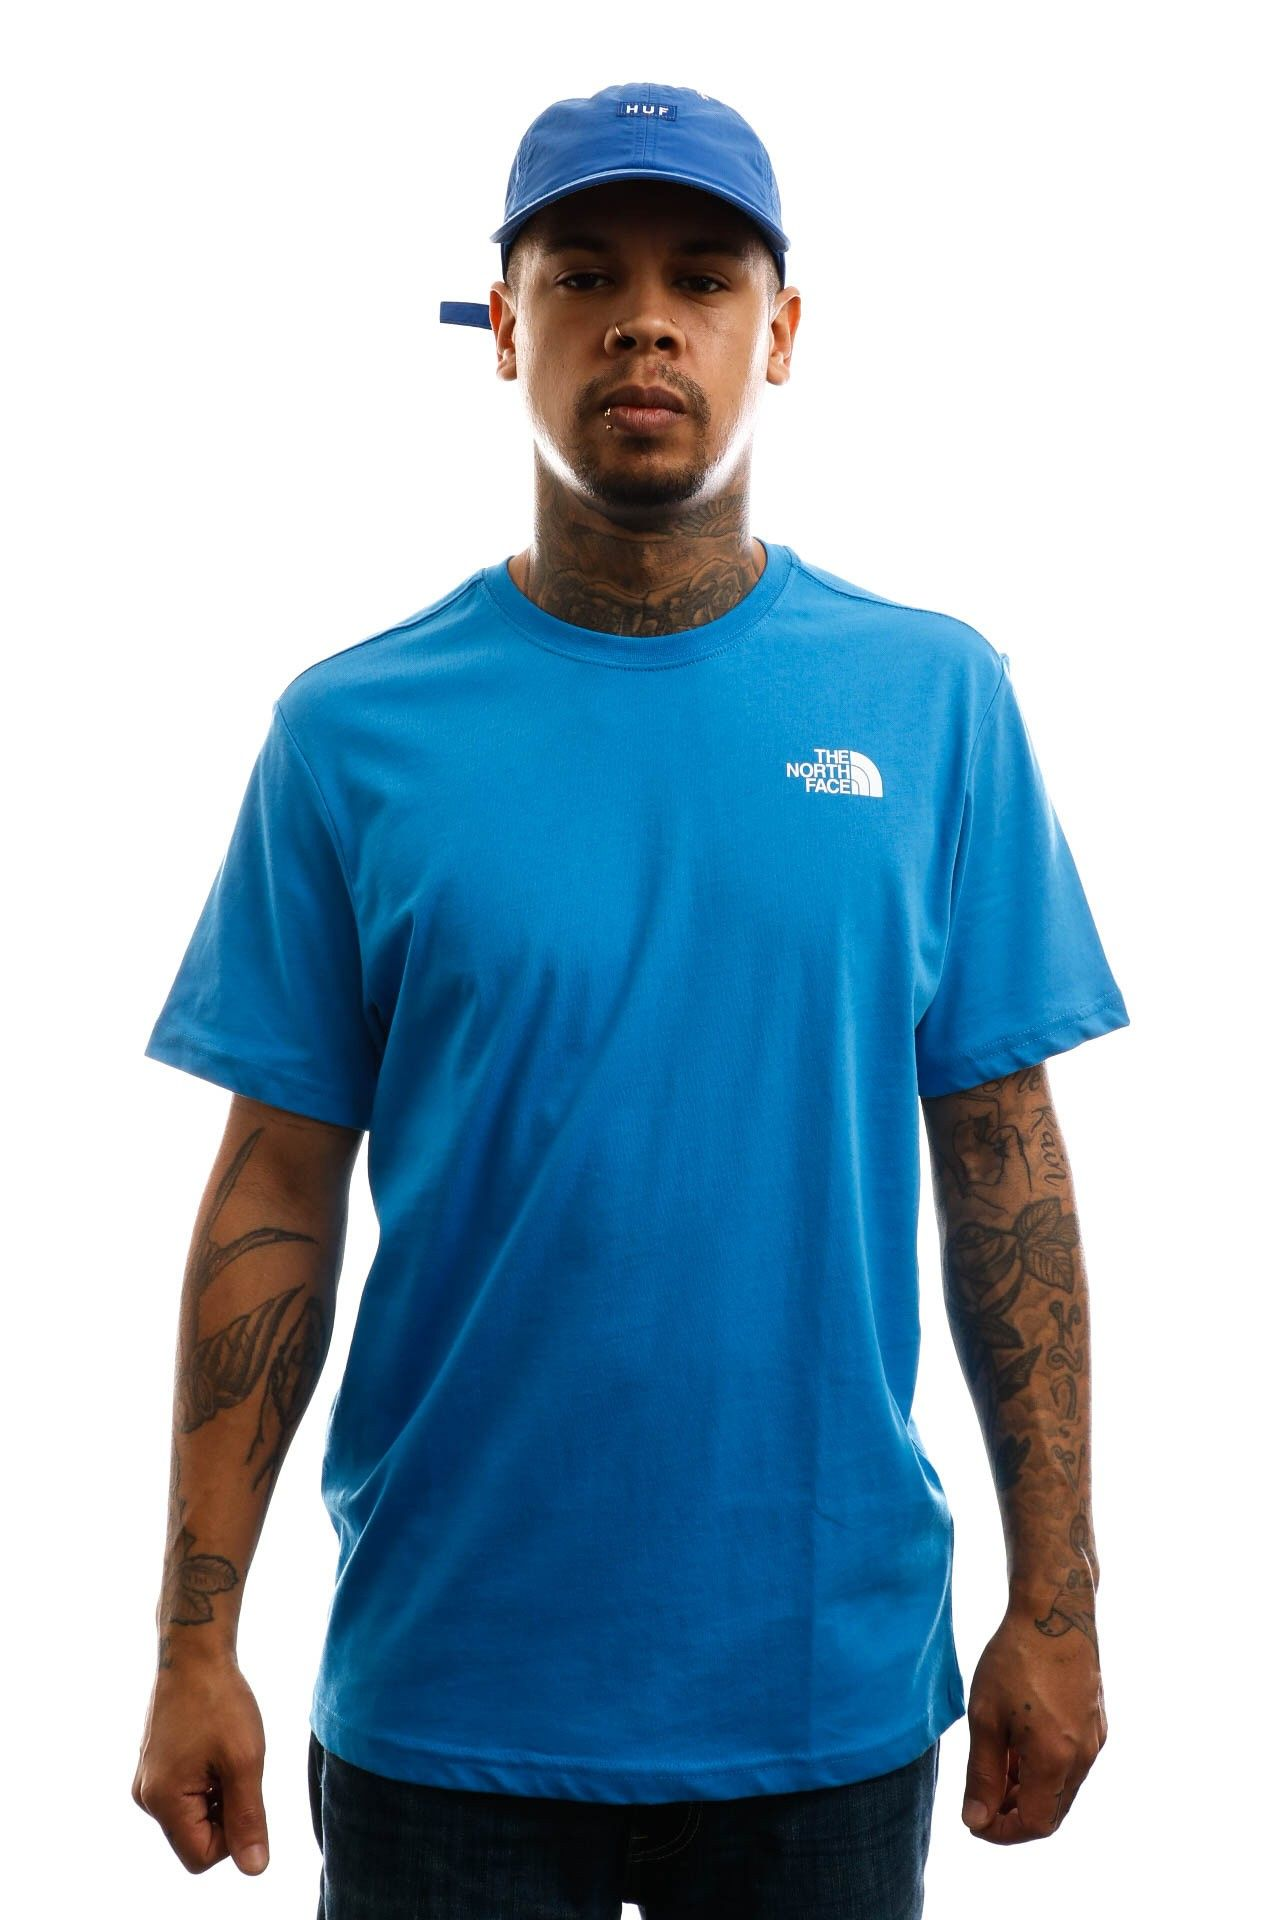 Afbeelding van The North Face T-shirt Men's S/S Redbox Tee Clear Lake Blue NF0A2TX2W8G